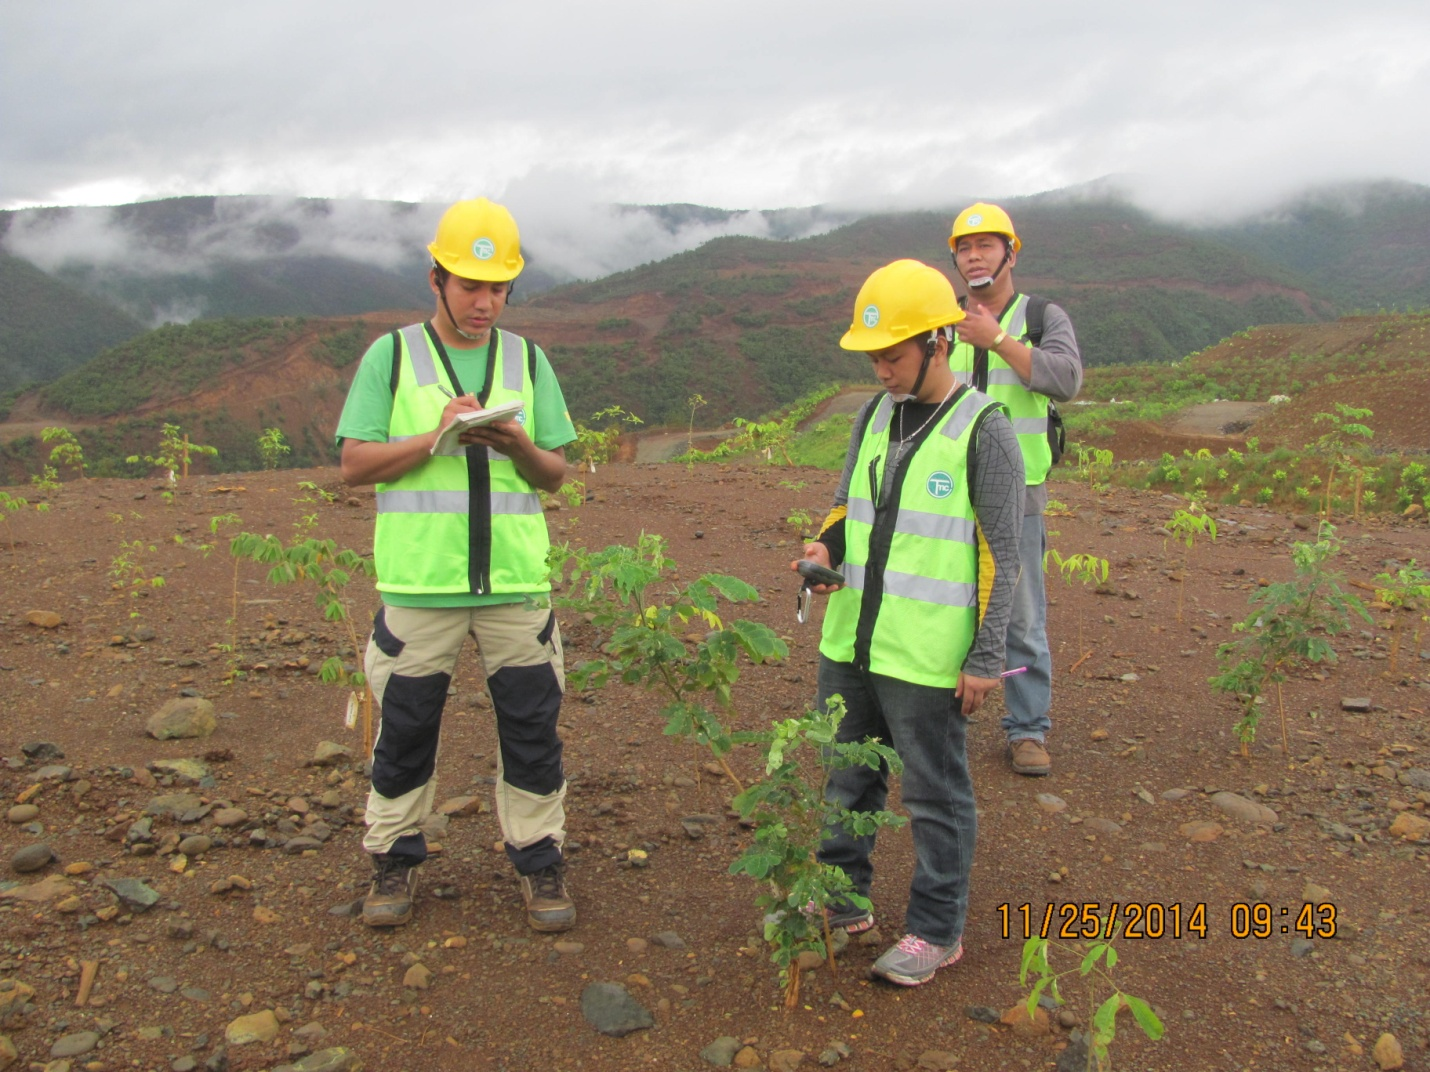 Project staff gathering data on the performance of the ecobelt in the mined-out area